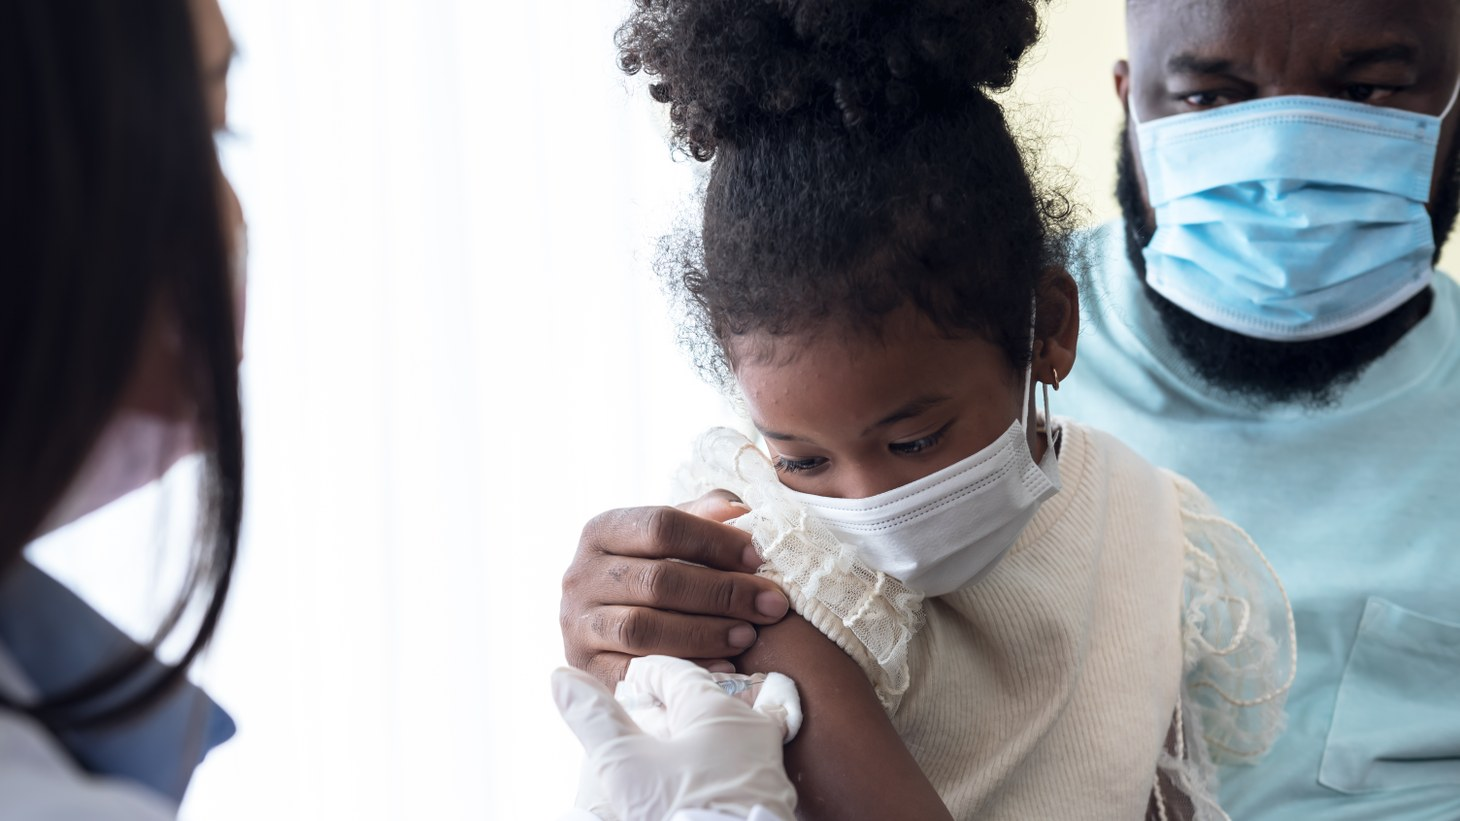 When will toddlers have a safe and effective COVID-19 vaccine? Stanford started a study this week to find the right dosage for kids under age 12.